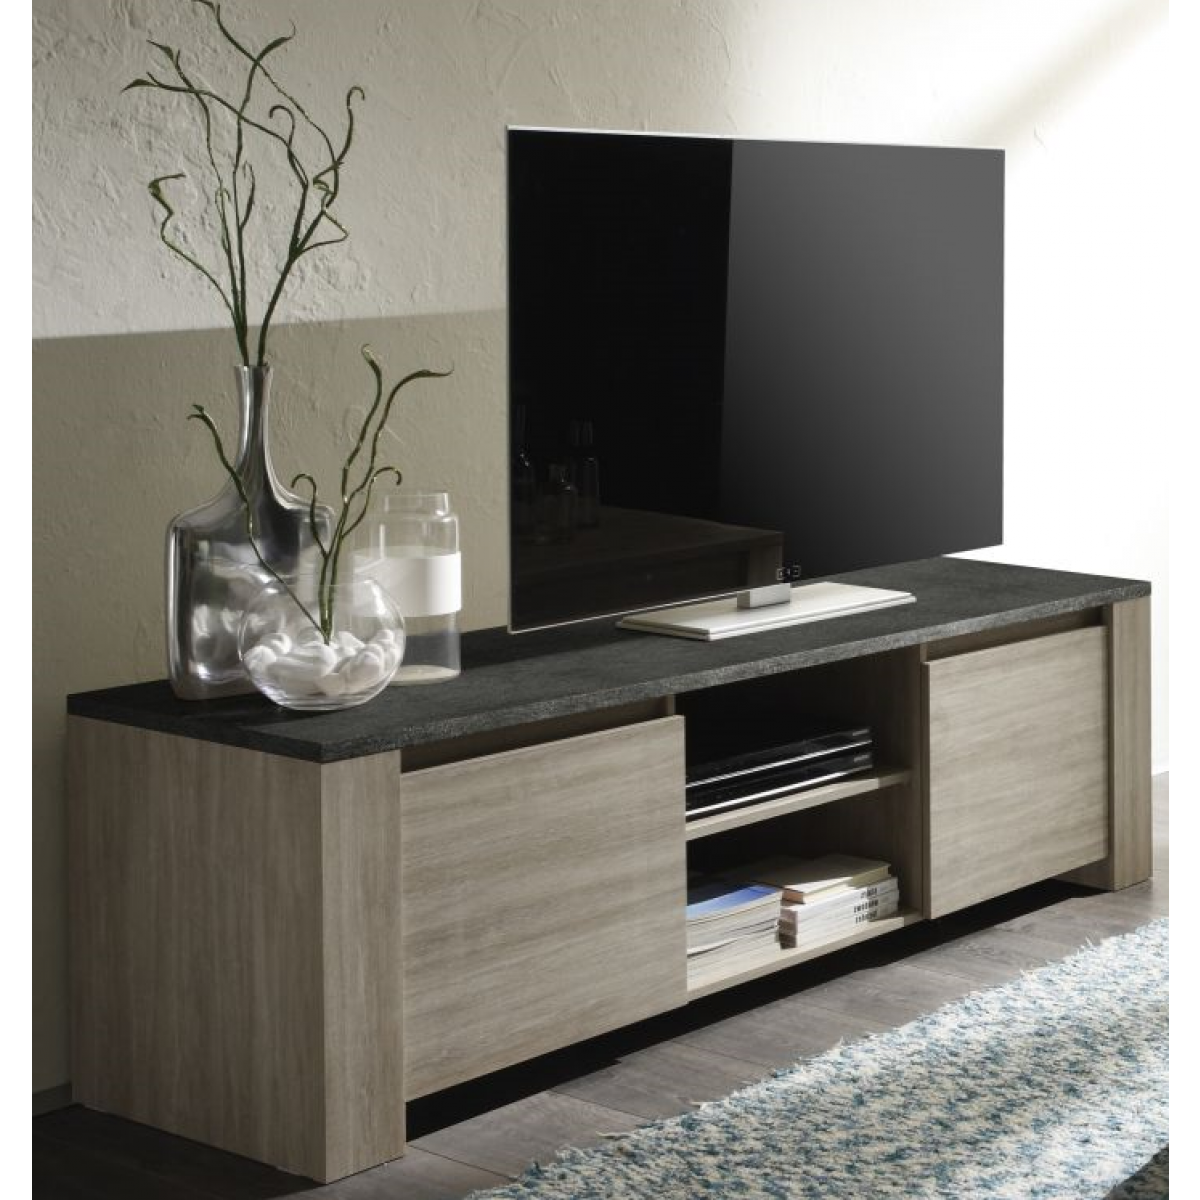 meuble tv finition ch ne gris et ardoise 2 portes elba. Black Bedroom Furniture Sets. Home Design Ideas